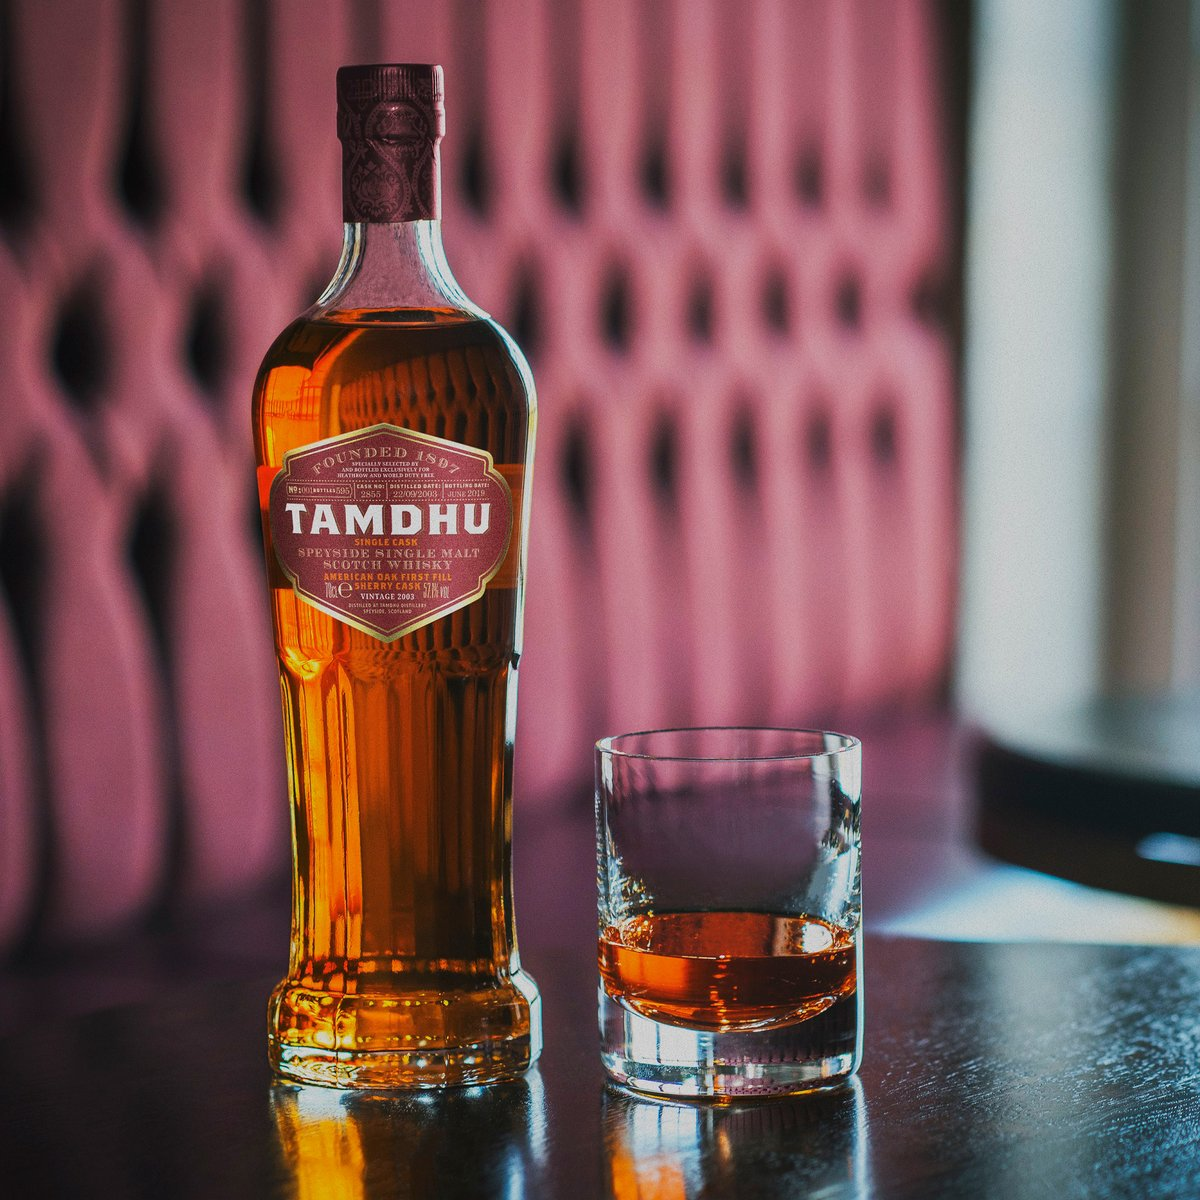 A limited number of bottles of our exclusive Tamdhu London Heathrow Single Cask are now available to buy via our website. 🥃  Previously exclusively available at London Heathrow, this  is truly a dram for those who accept only the best.   Shop now: https://t.co/N301t1x6s4 https://t.co/lgBKjdjXtd